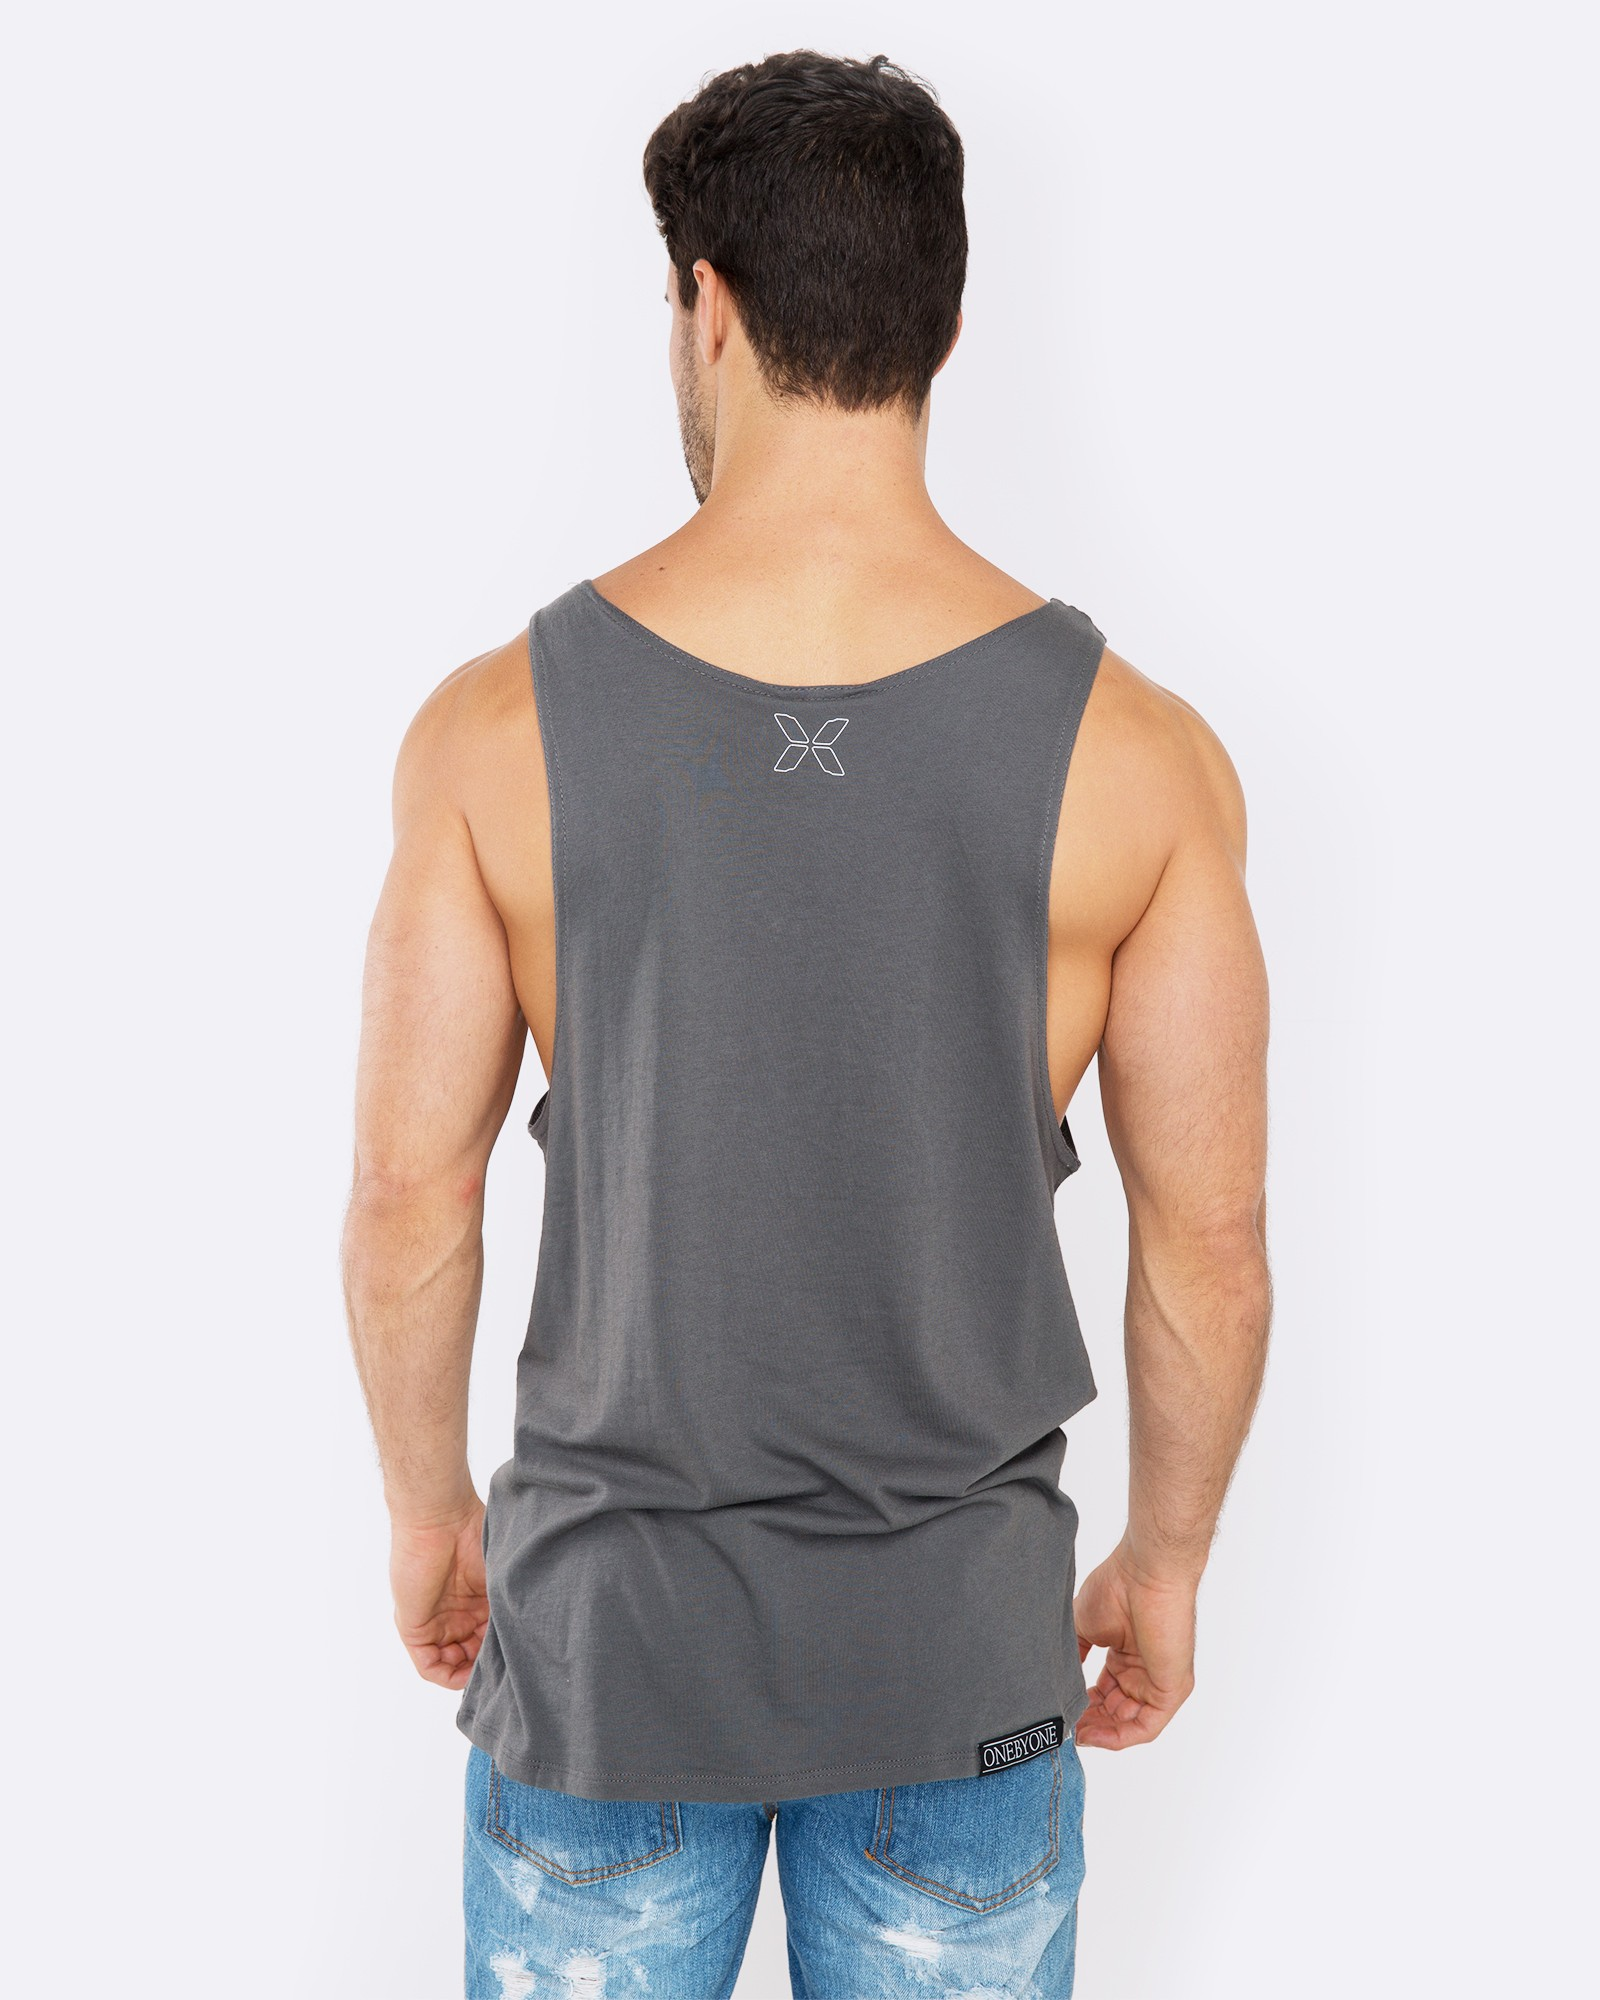 ANTIDOTE GREY SINGLET